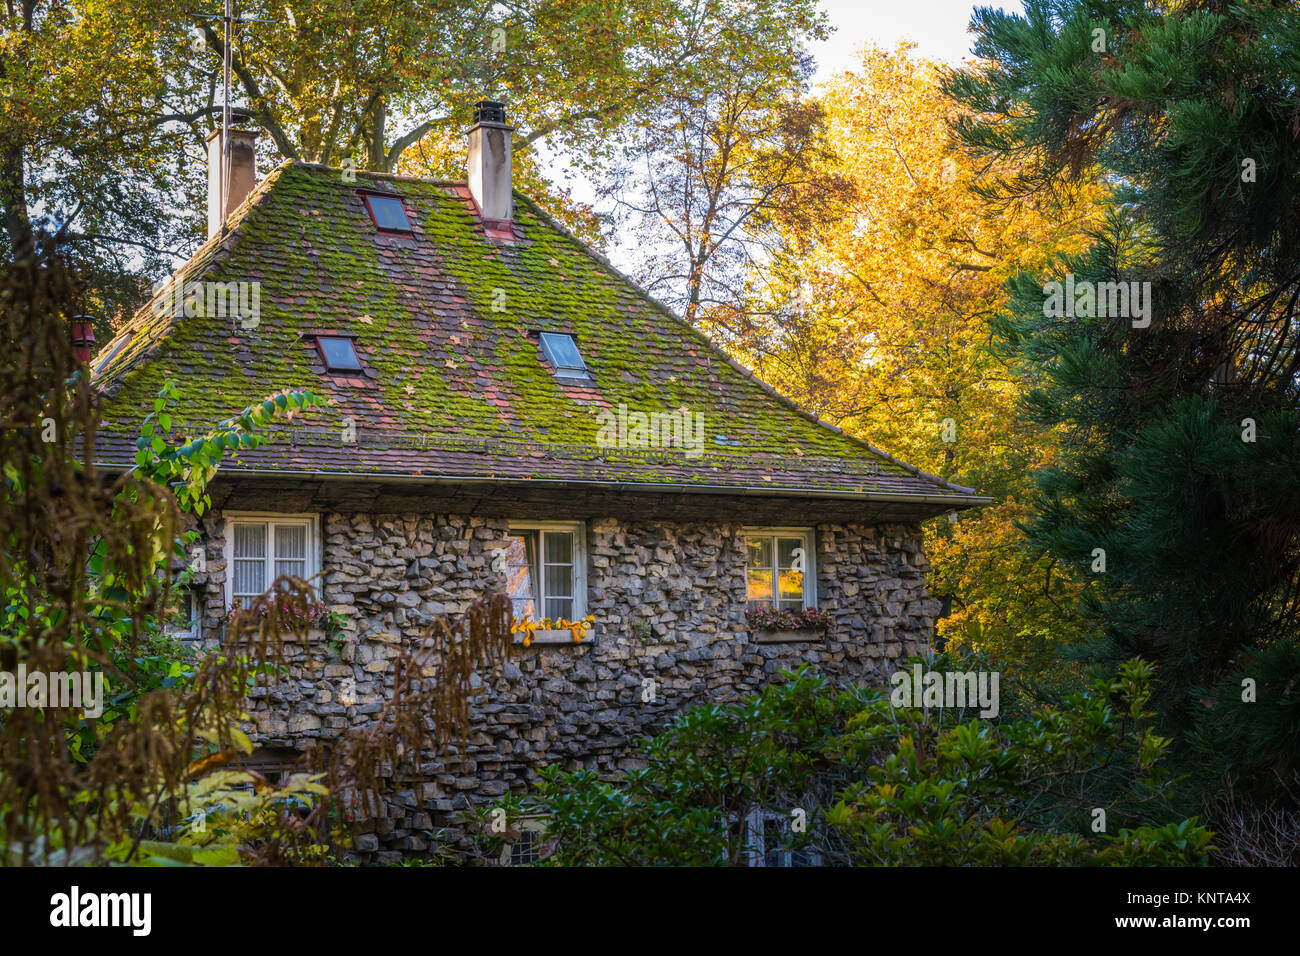 Large Old Stone House Forest Fantasy Fairy Tale German Woods Cottage Structure Green Autumn Fall Season Chimney Exterior